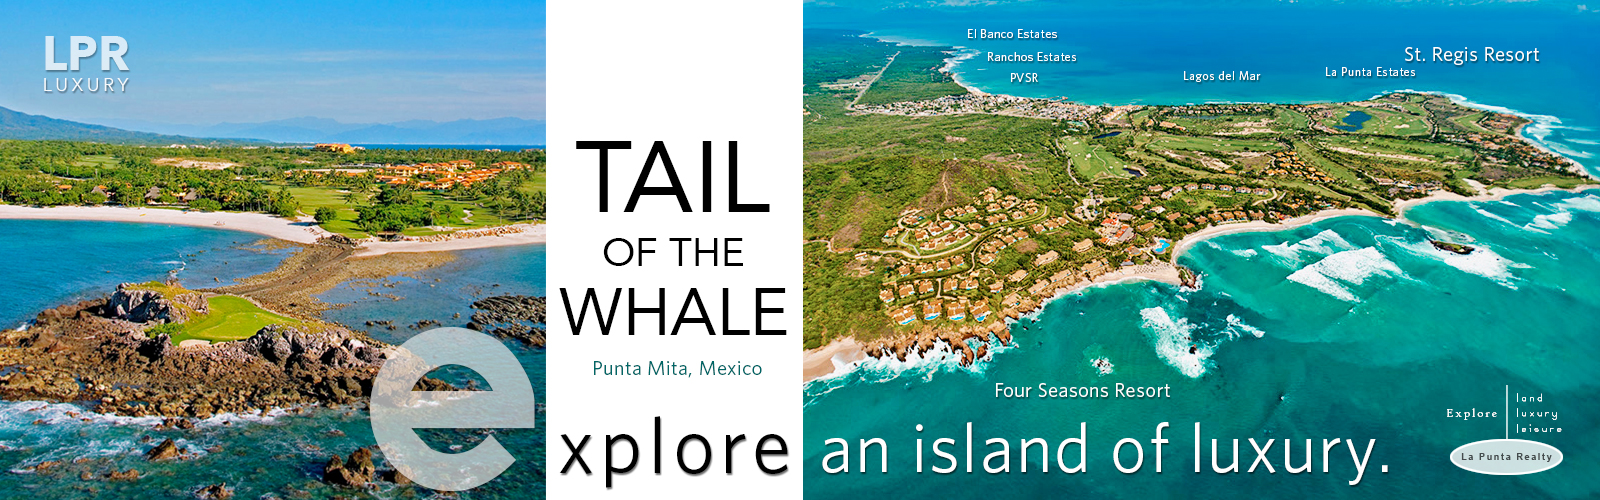 Explore the Punta Mita Resort - Vallarta | Nayarit - Mexico featuring the St. Regis Punta Mita and the Four Seasons Punta Mita offering two Jack Nicklaus golf courses and a world of water adventures.